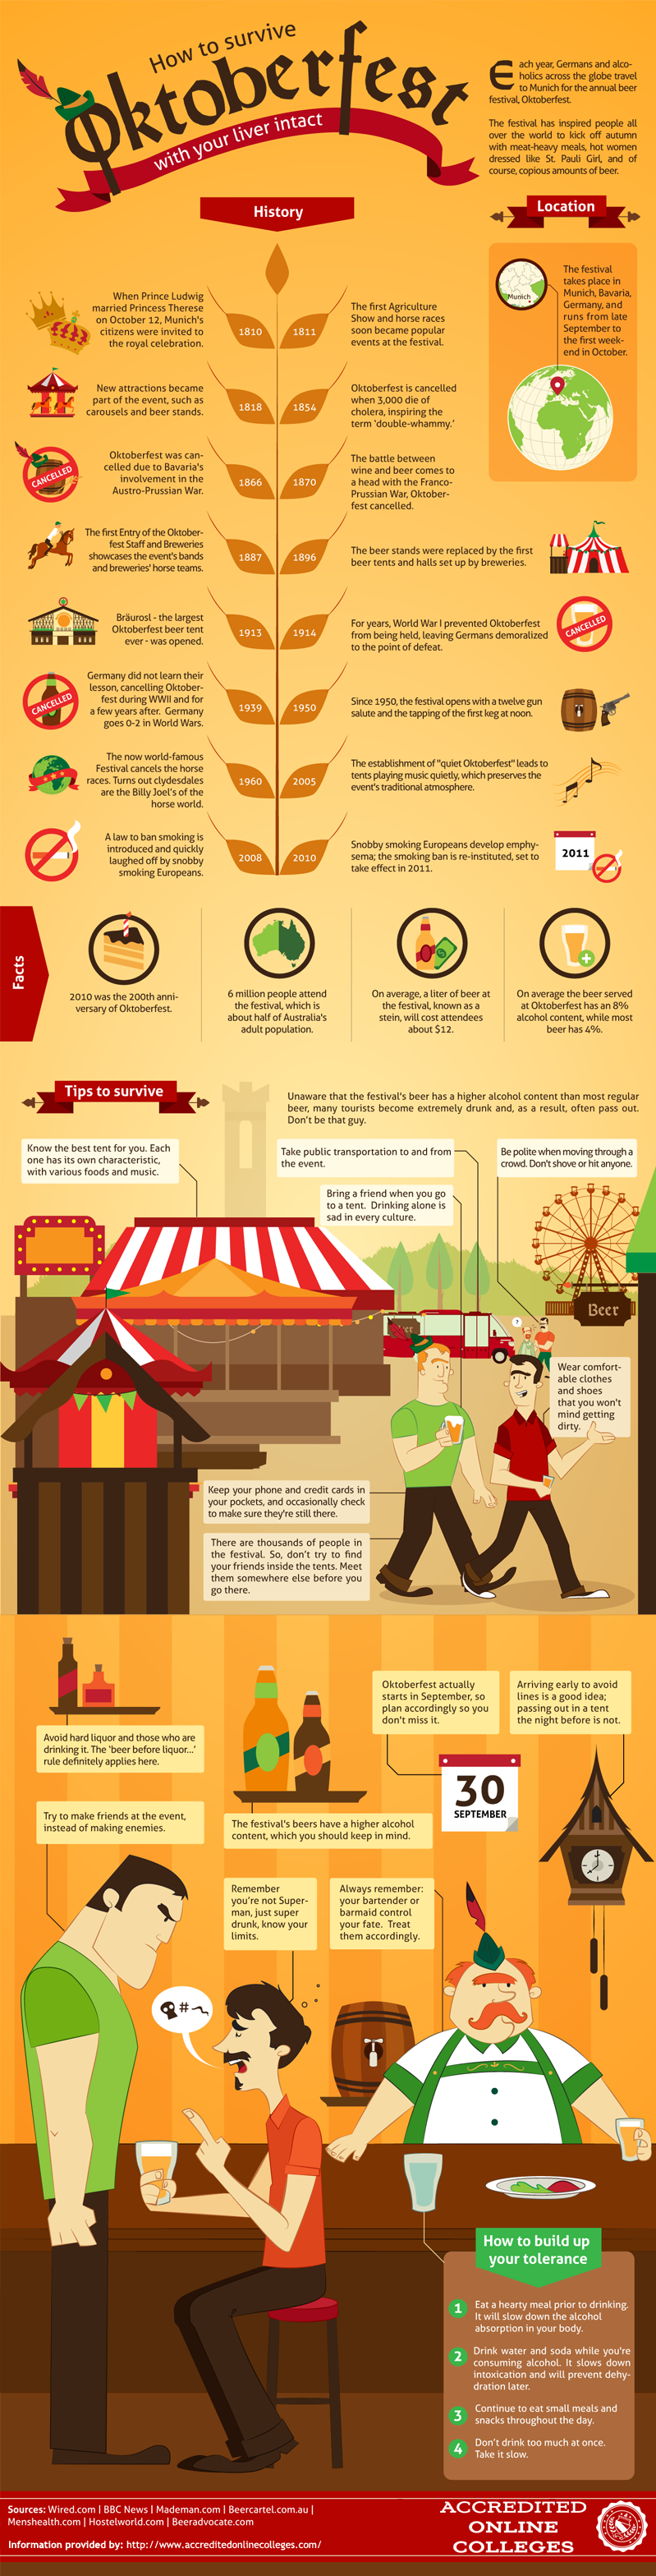 How to Survive Oktoberfest With Your Liver Intact